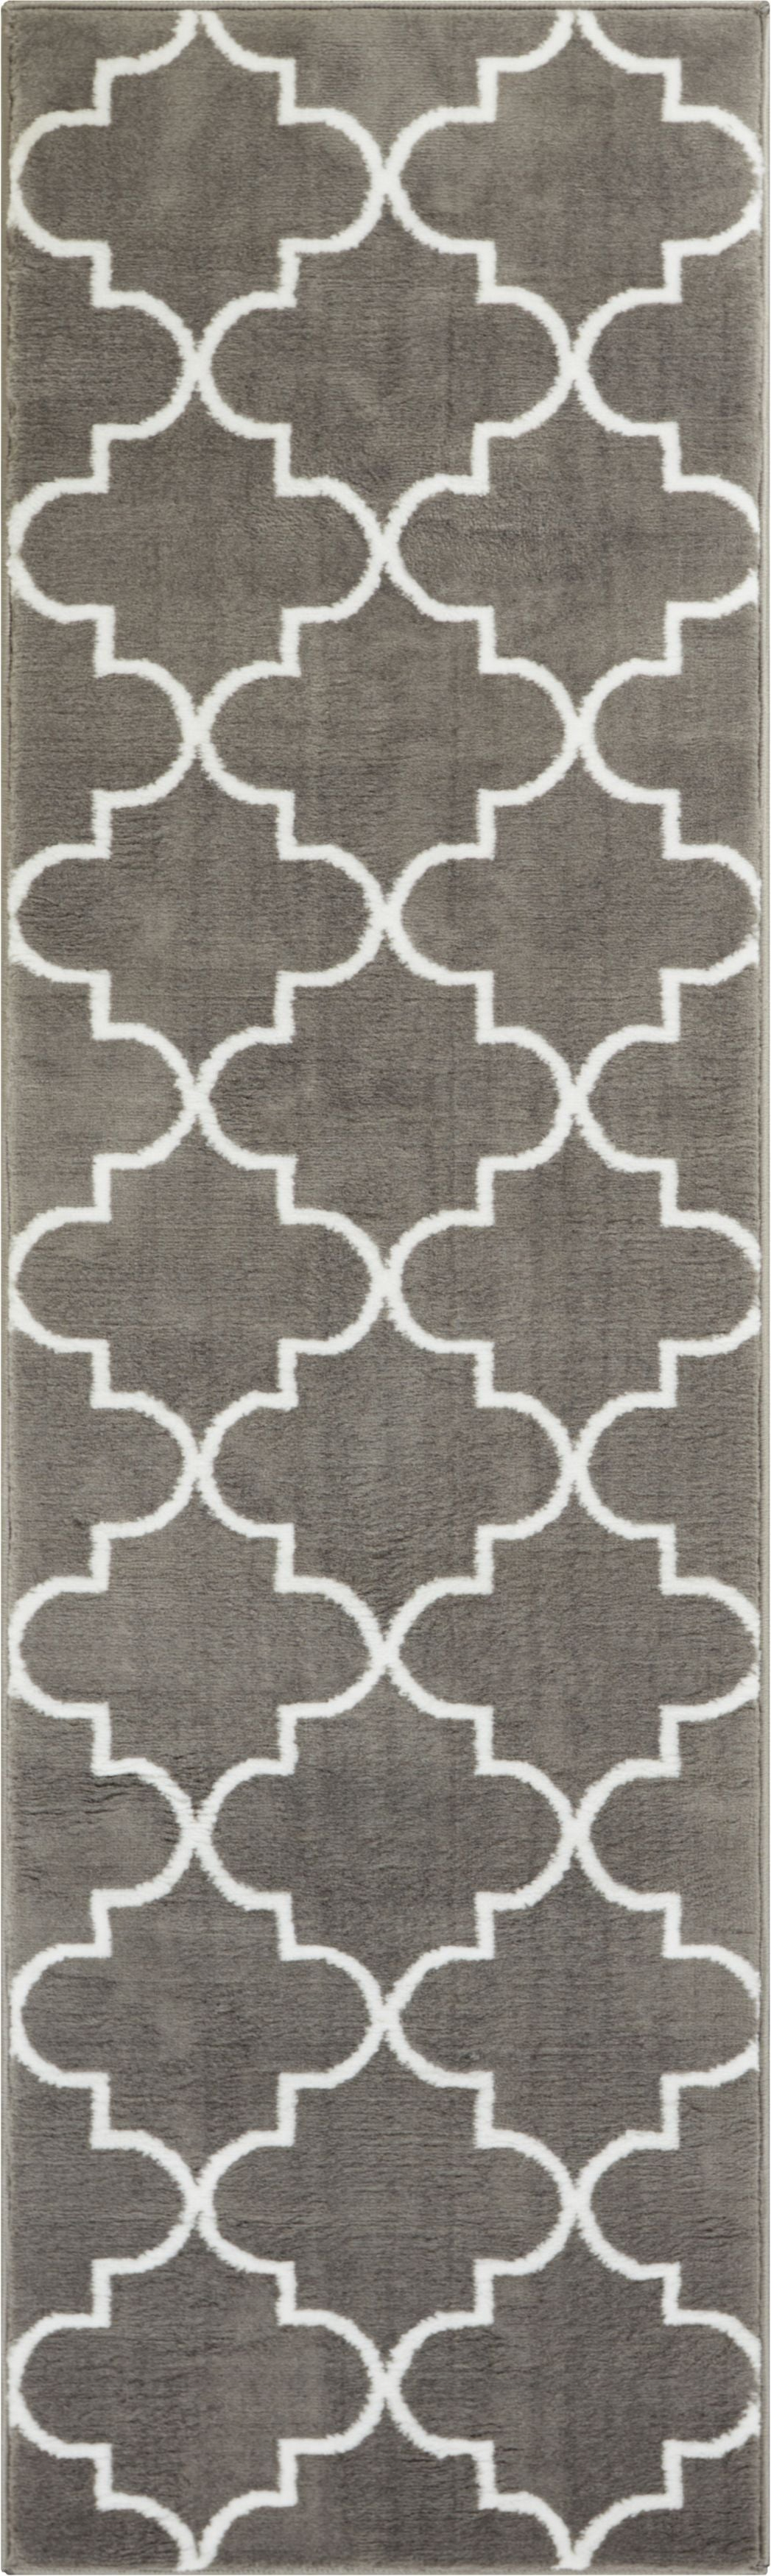 Lovely Geometric Rugs Page 11 - RugLots.com GE32